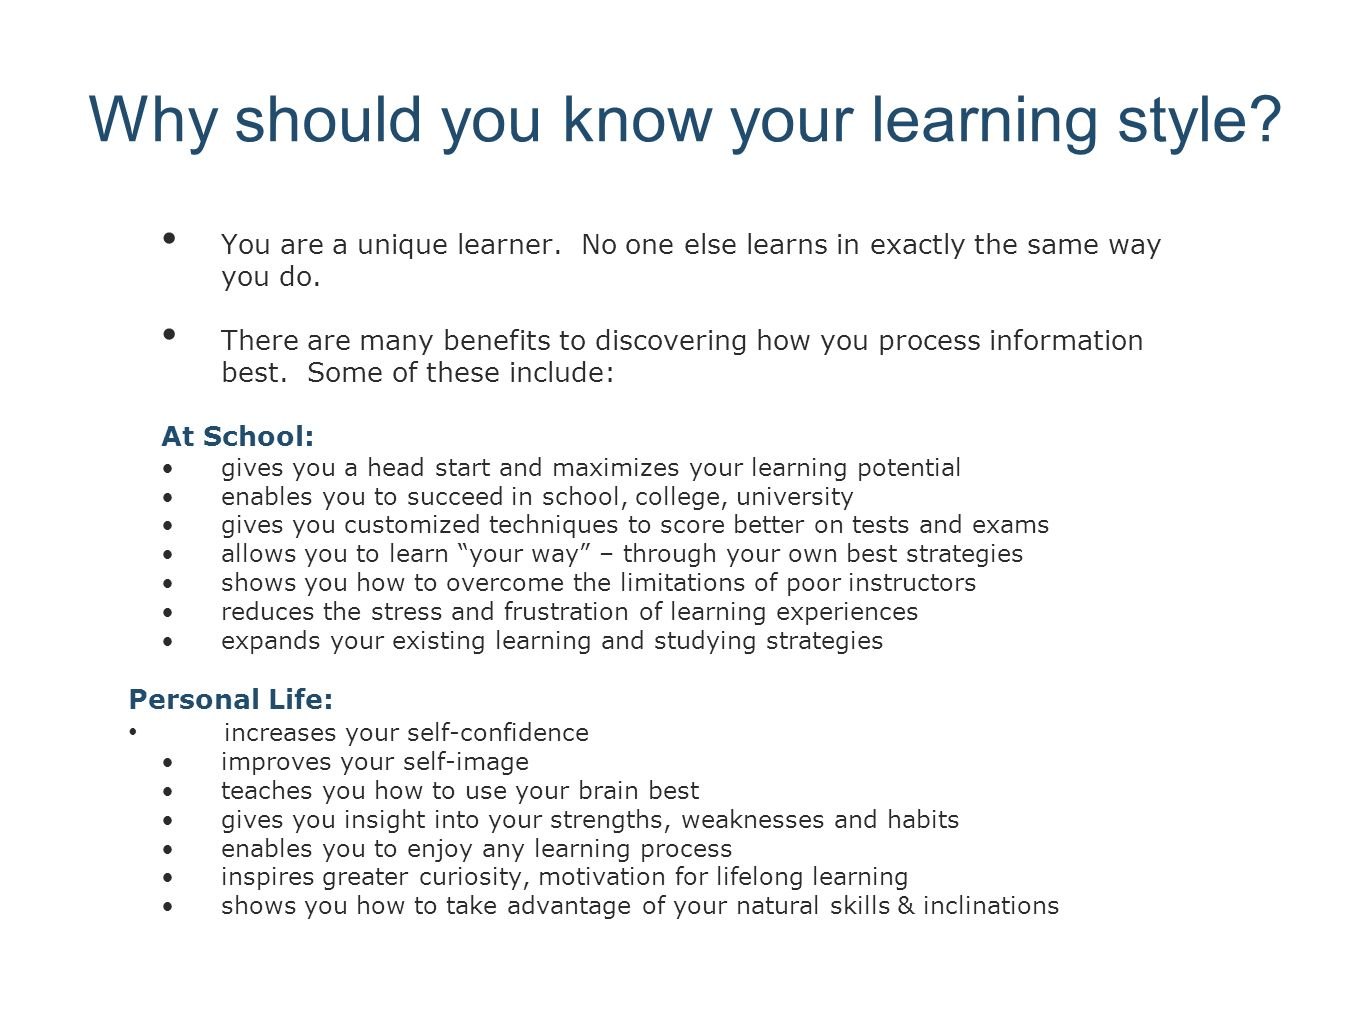 visual learning style essay visual learning style essay gxart three types of learning styles visual learn by seeing why should you know your learning style